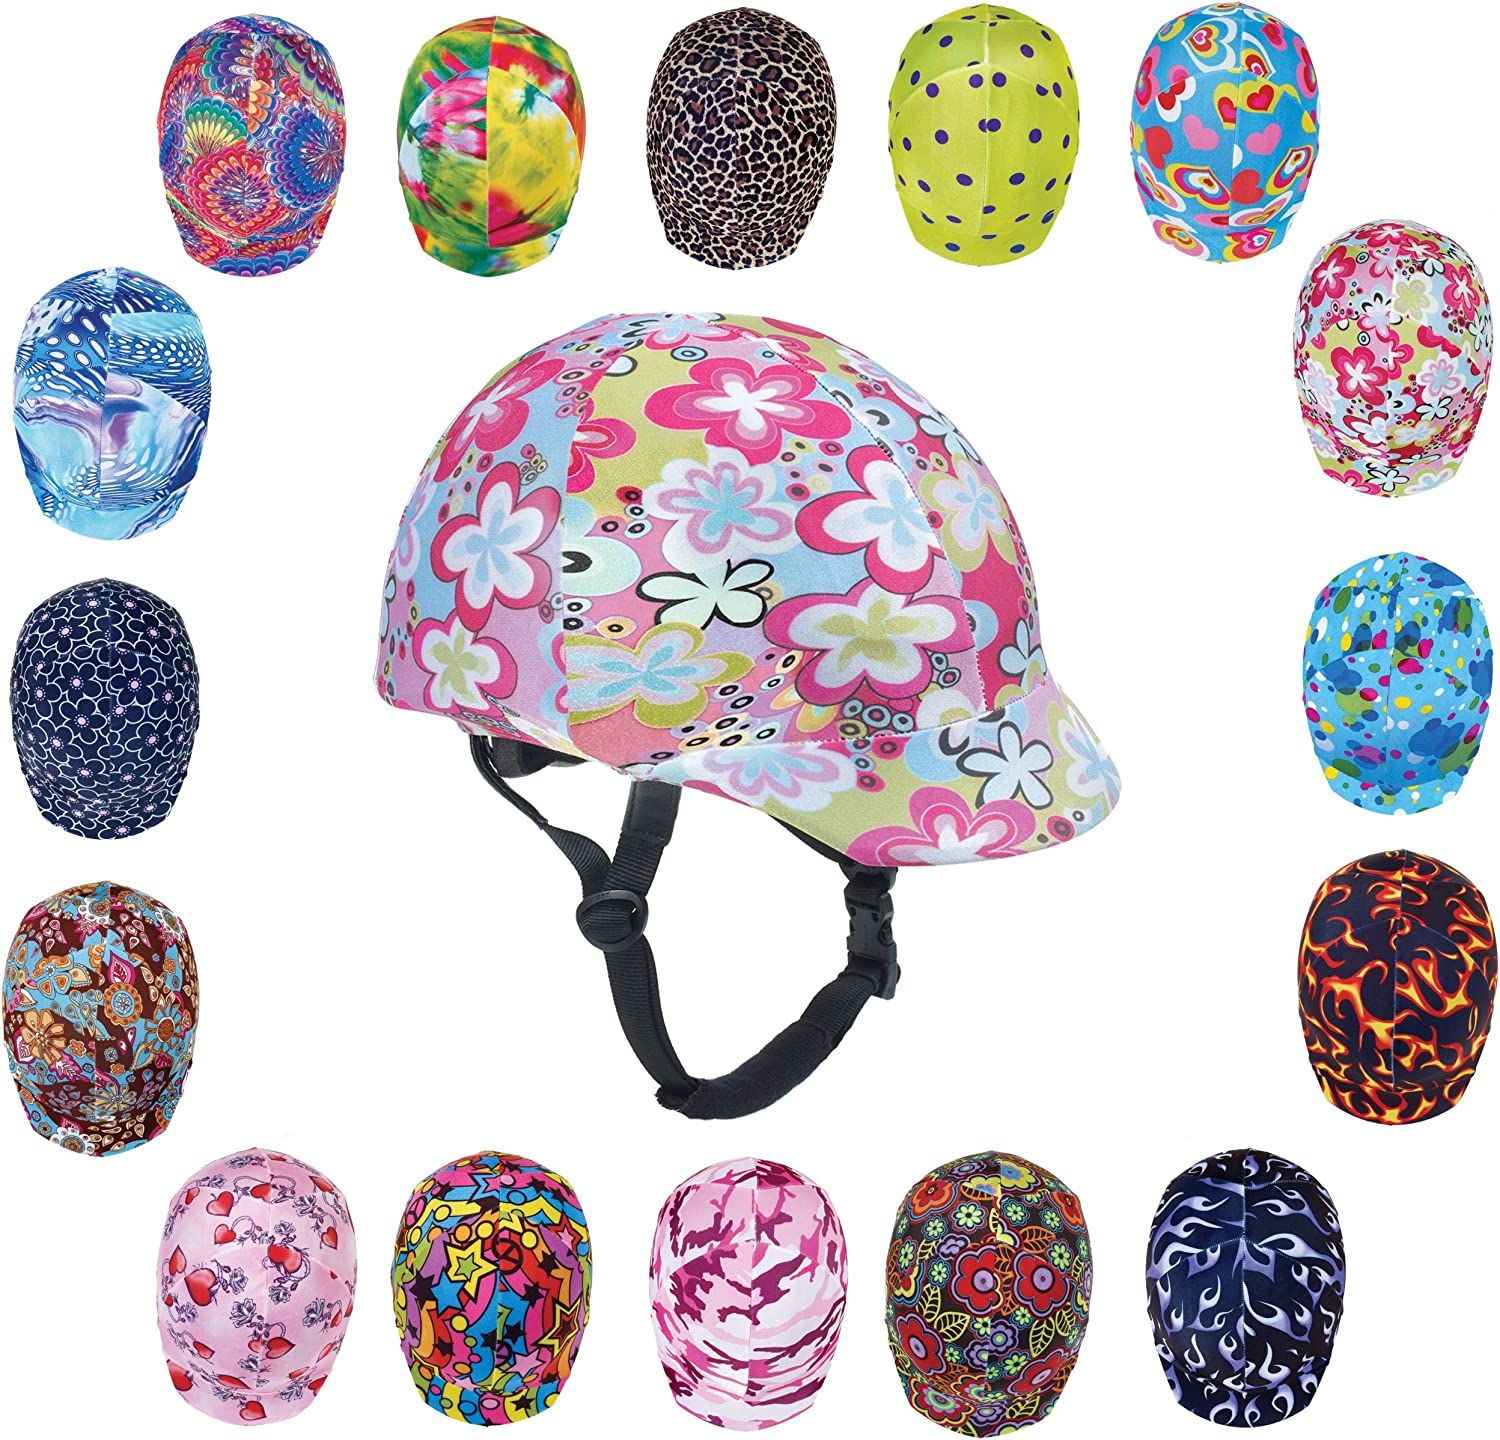 Ovation Zocks Solid Color Helmet Cover